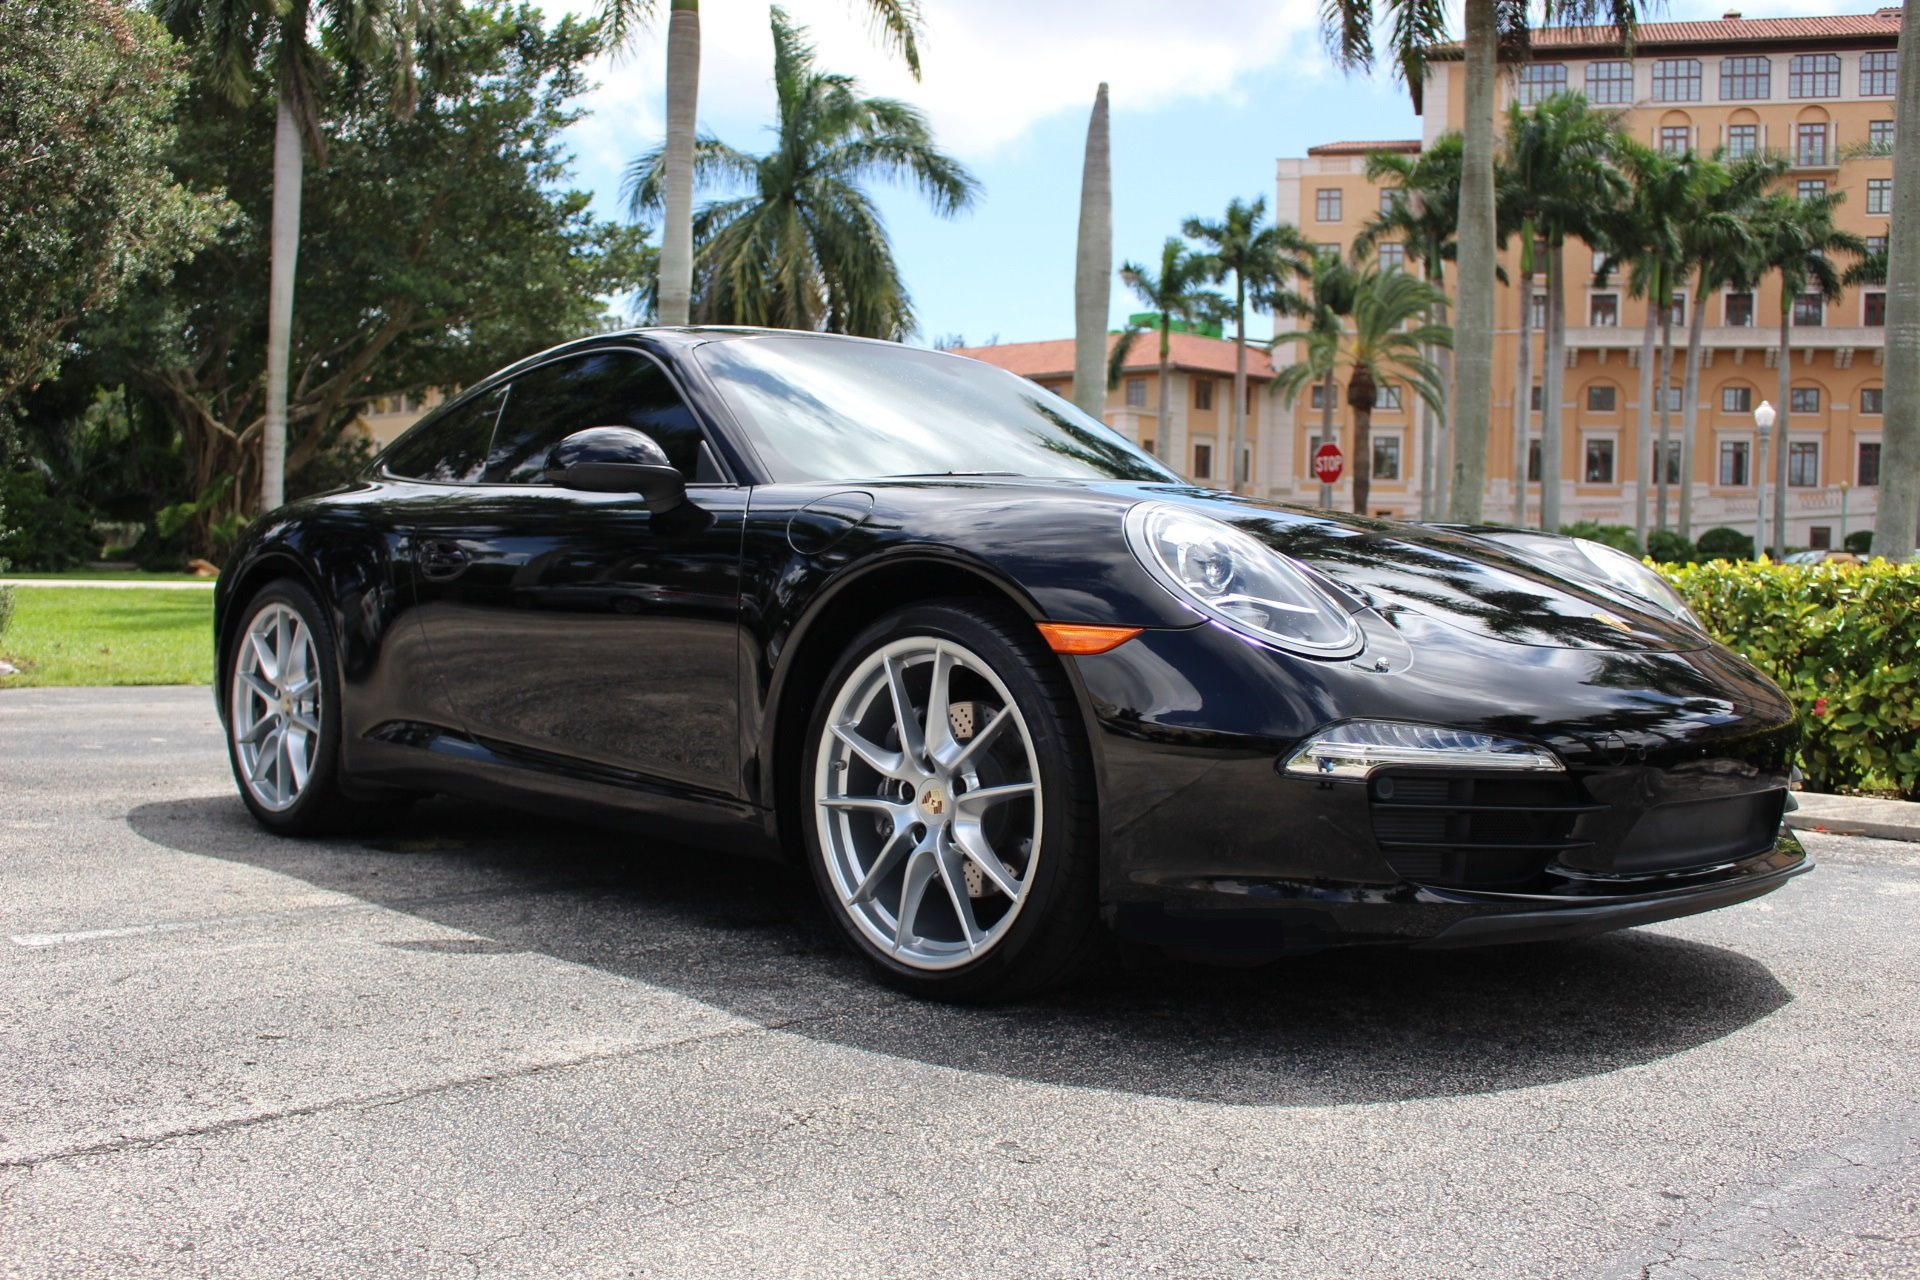 Used 2012 Porsche 911 Carrera for sale Sold at The Gables Sports Cars in Miami FL 33146 2